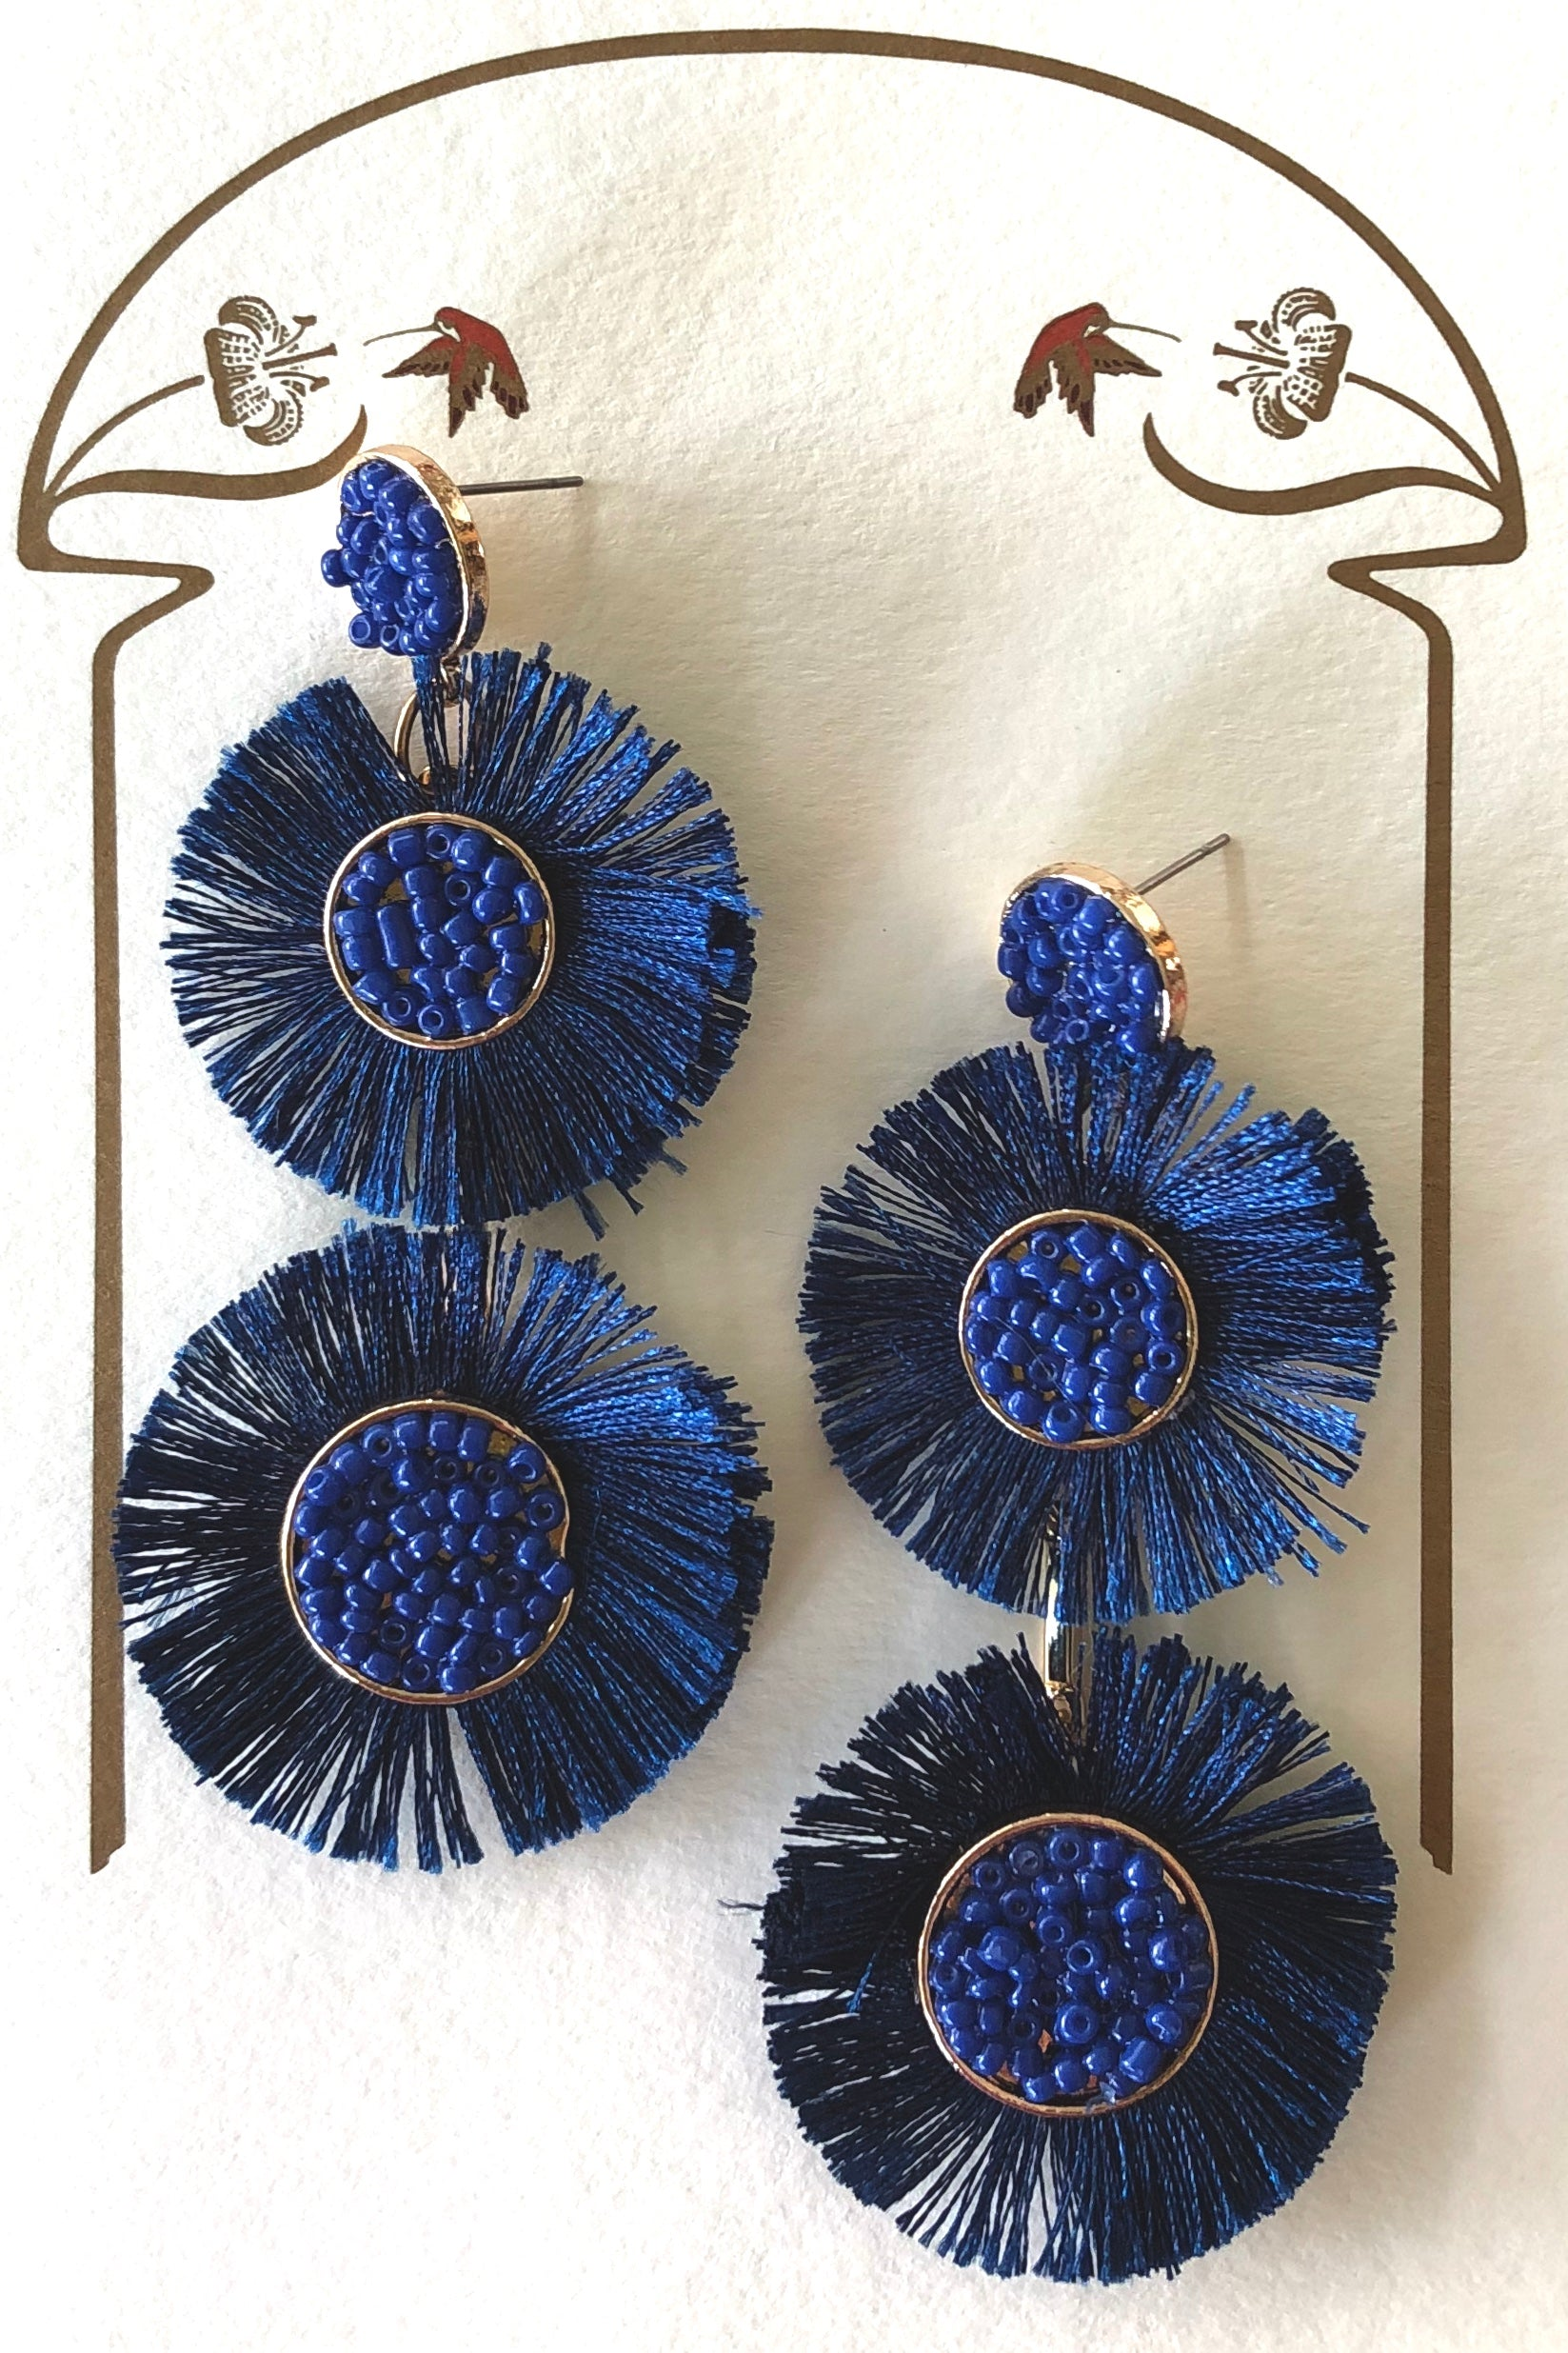 Earrings Lora Rosette with Dark Blue Fringe, Blue Boho Luxe Earrings